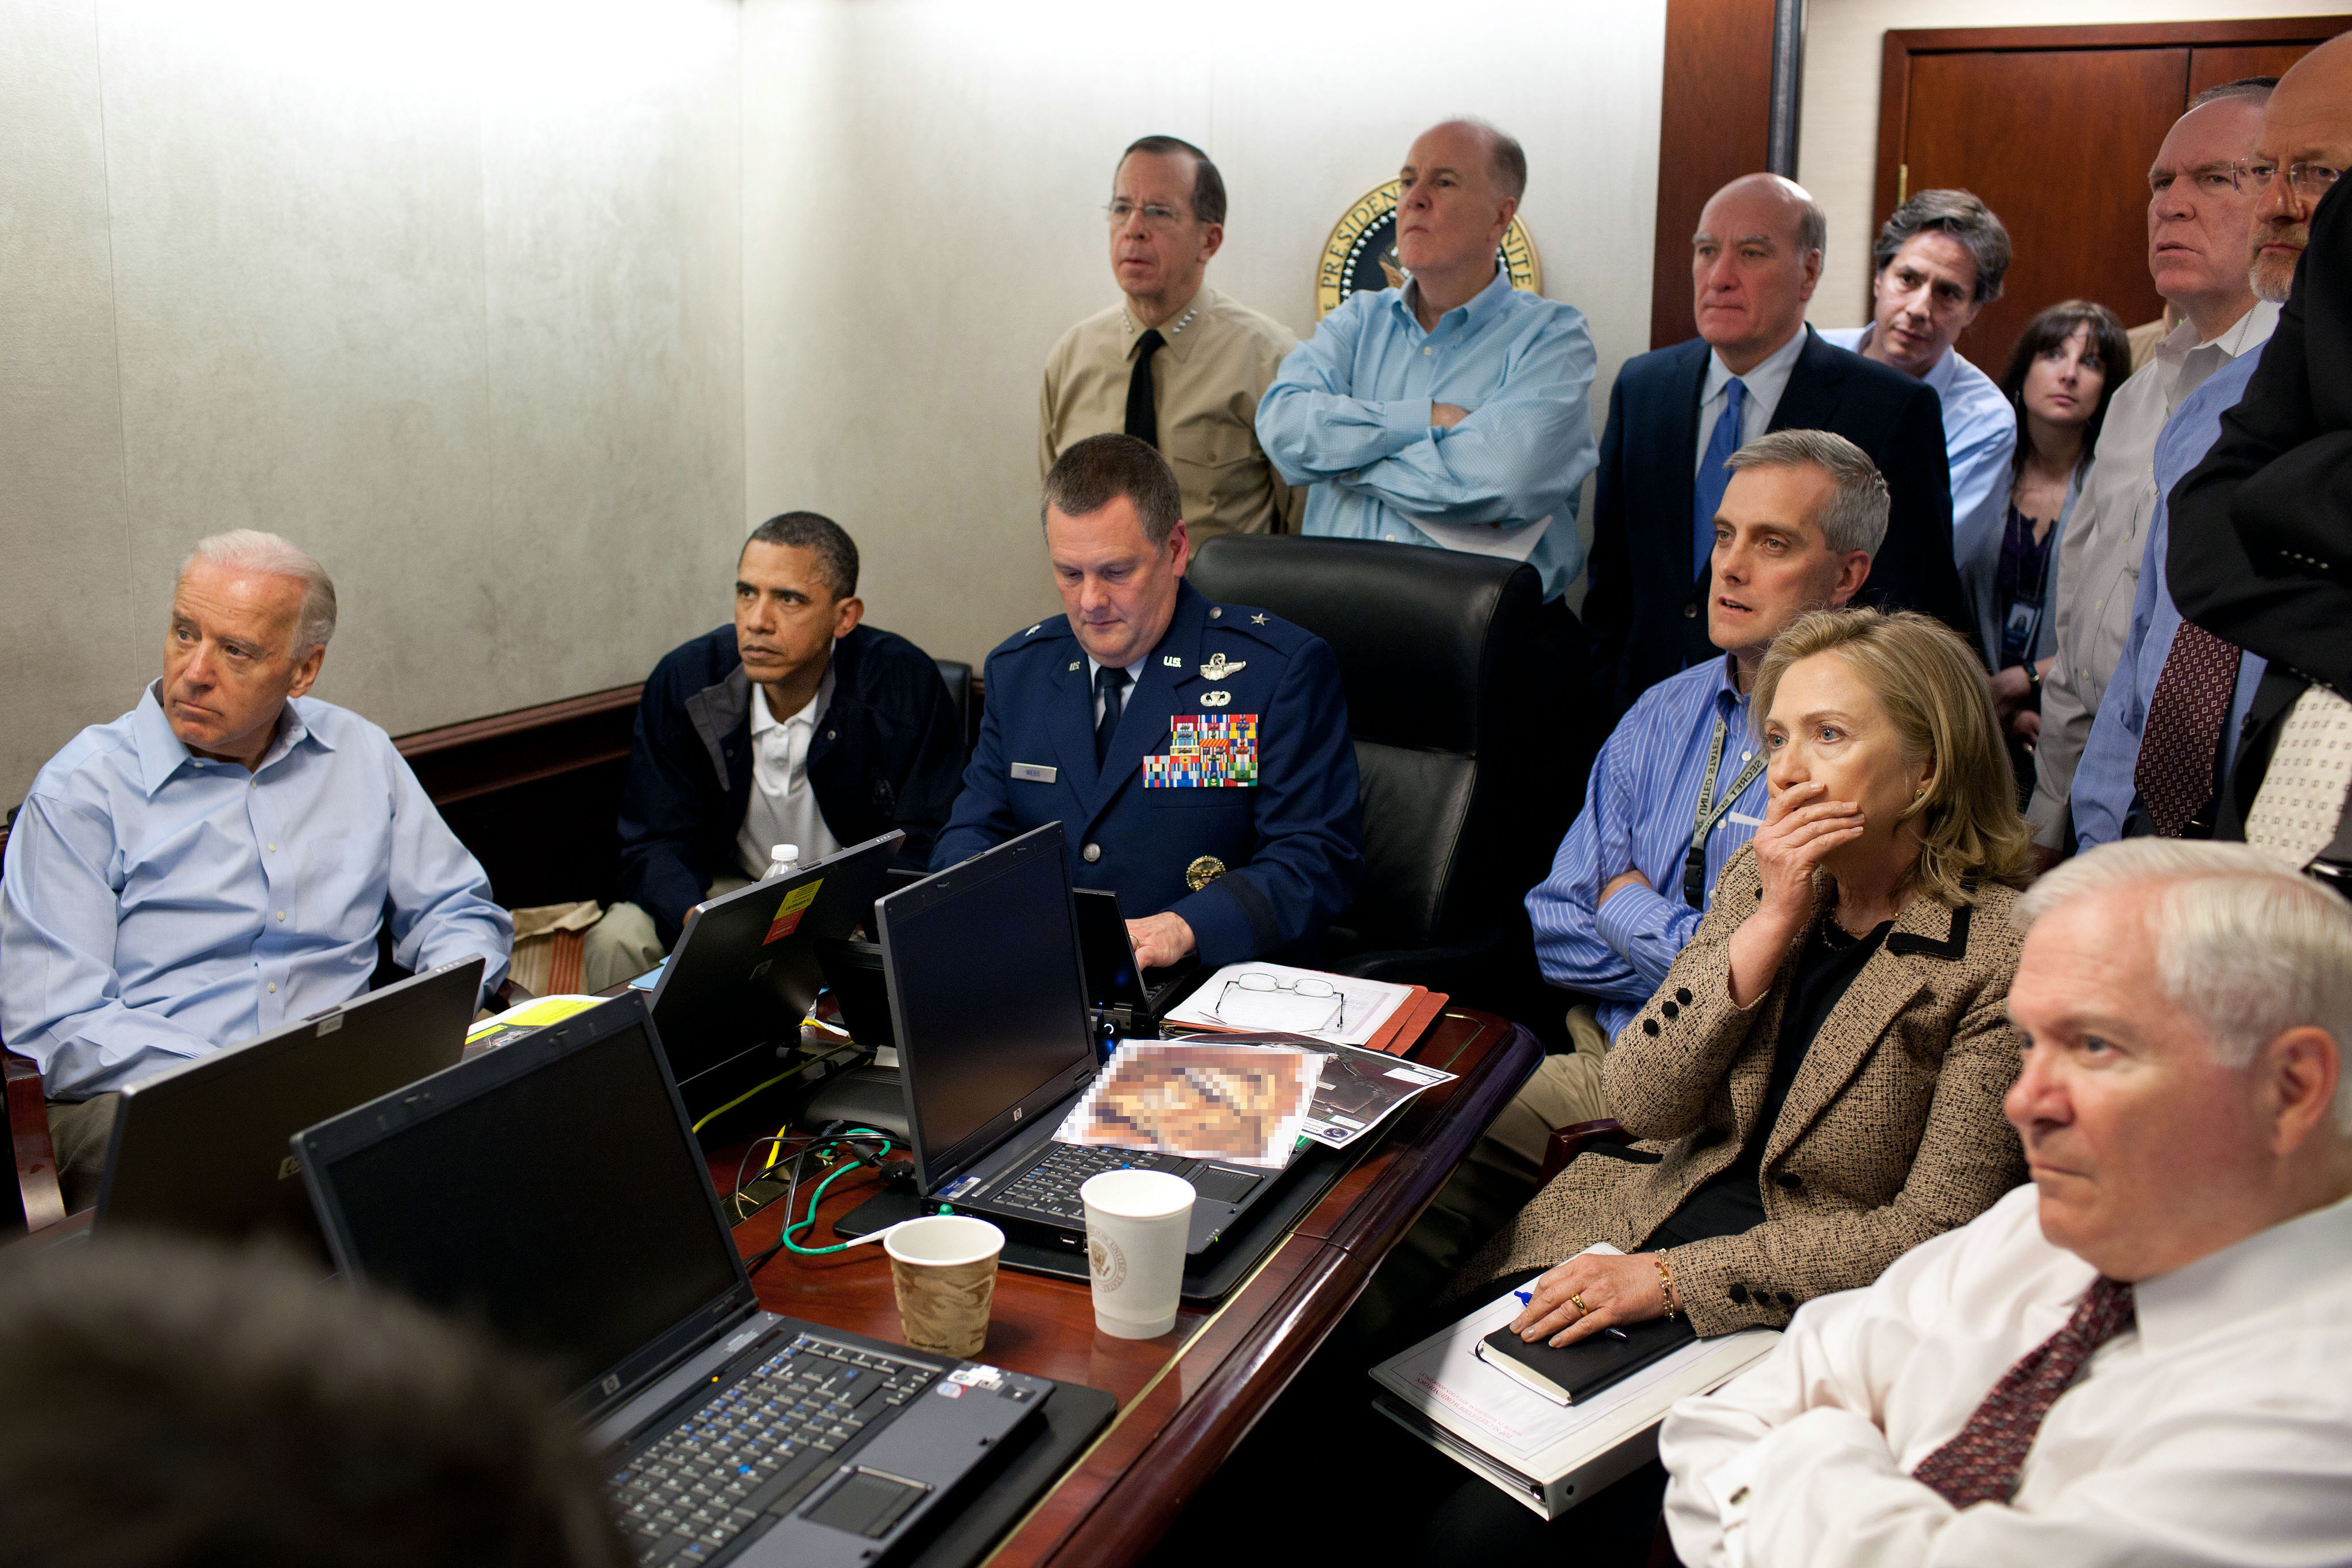 President Barack Obama and Vice President Joe Biden, Secretary of State Hillary Clinton, along with with members of the national security team, receive an update on the mission against Osama bin Laden in the Situation Room of the White House, May 1, 2011. Please note: a classified document seen in this photograph has been obscured. (Official White House Photo by Pete Souza)